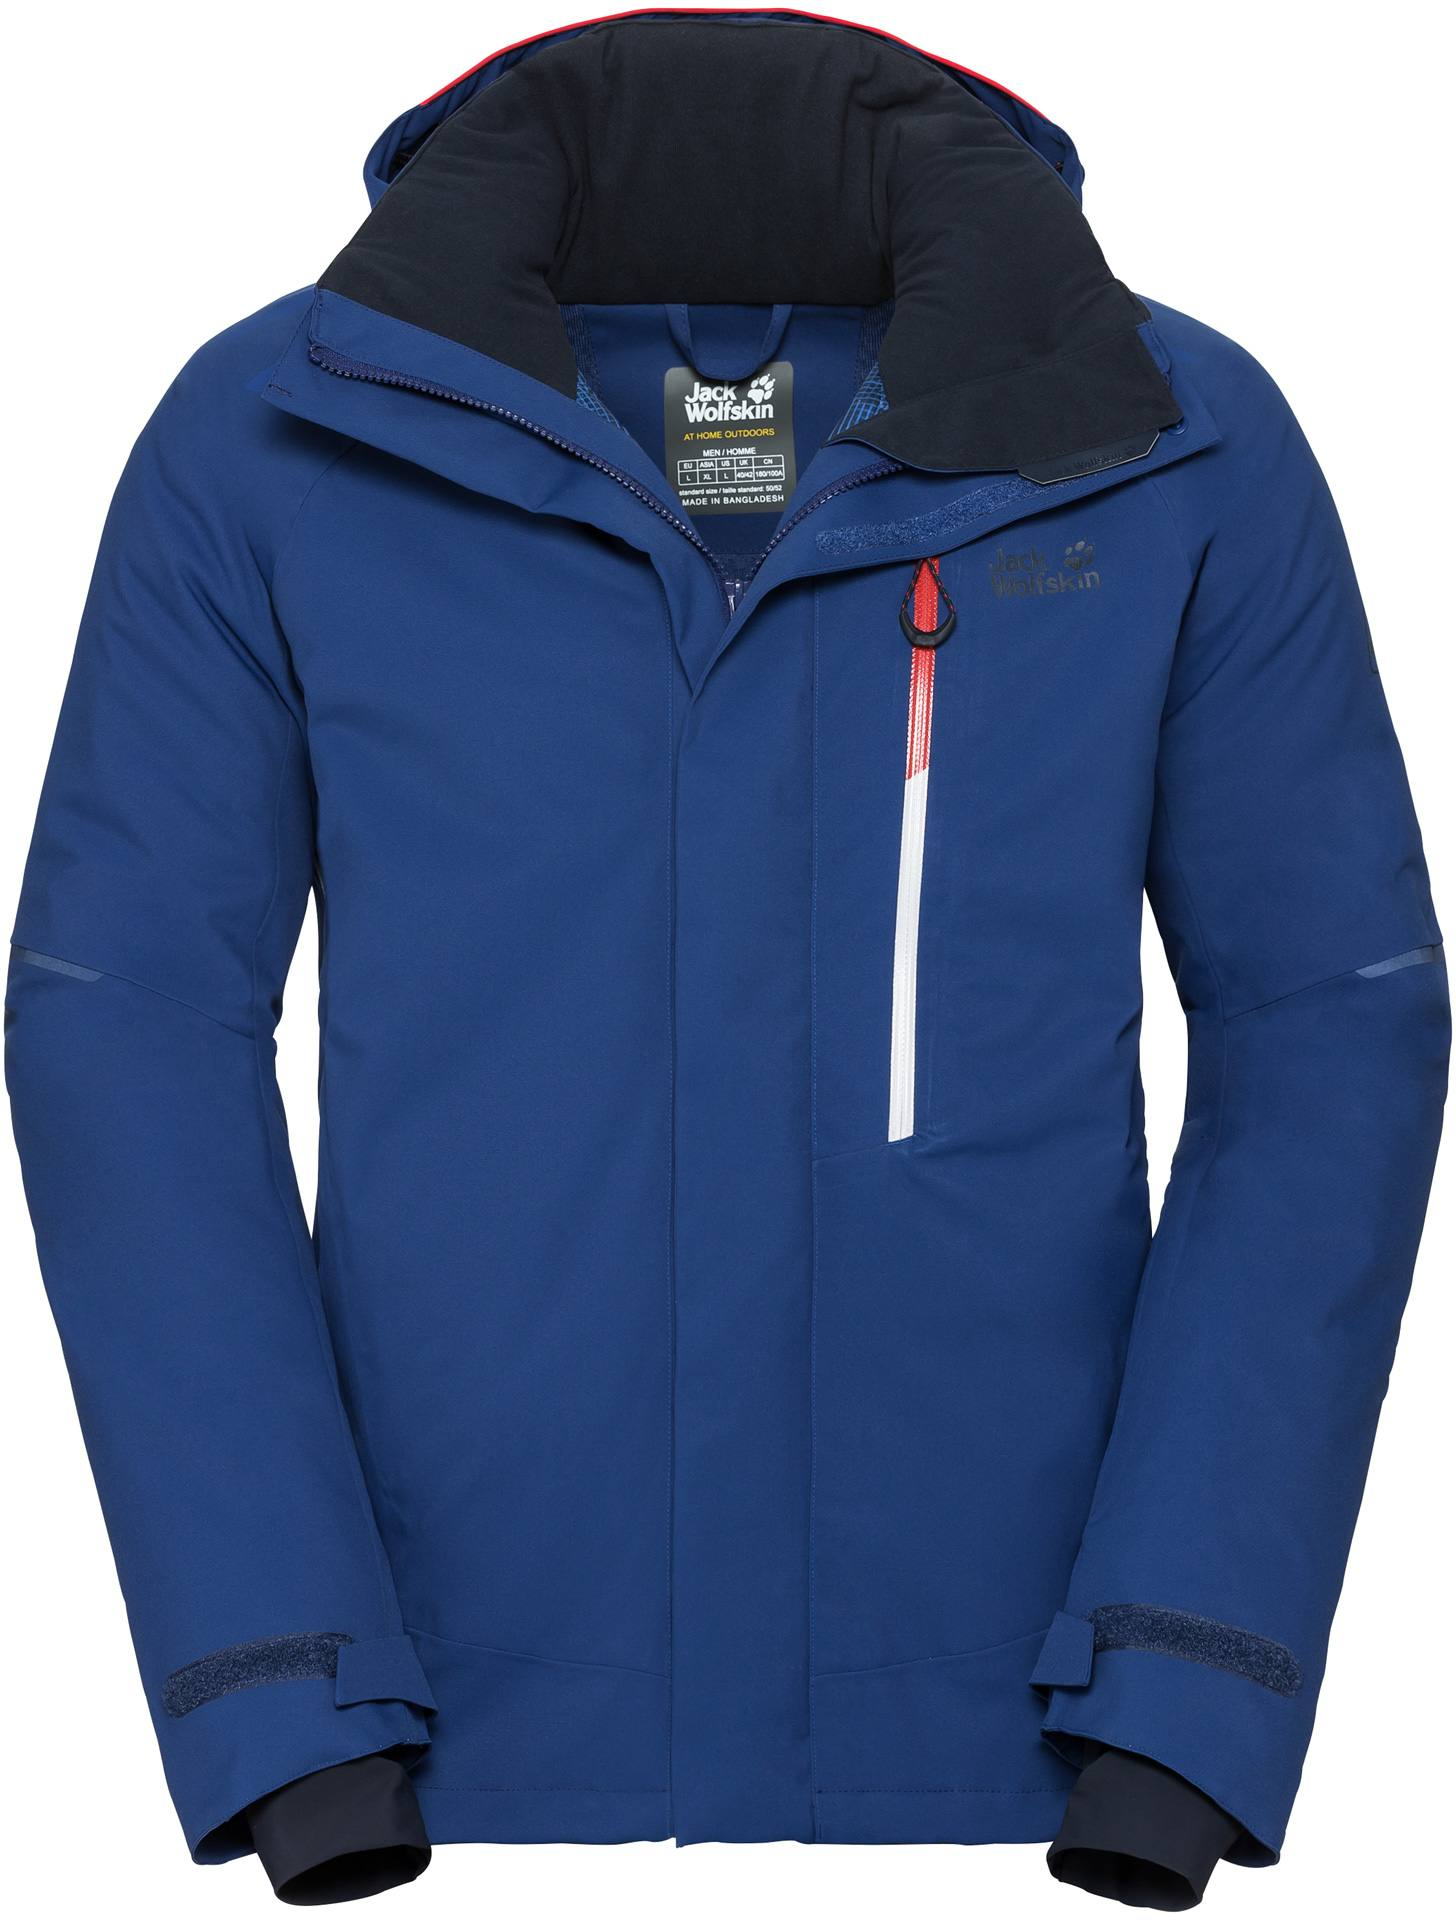 Jack wolfskin jacke at home outdoors